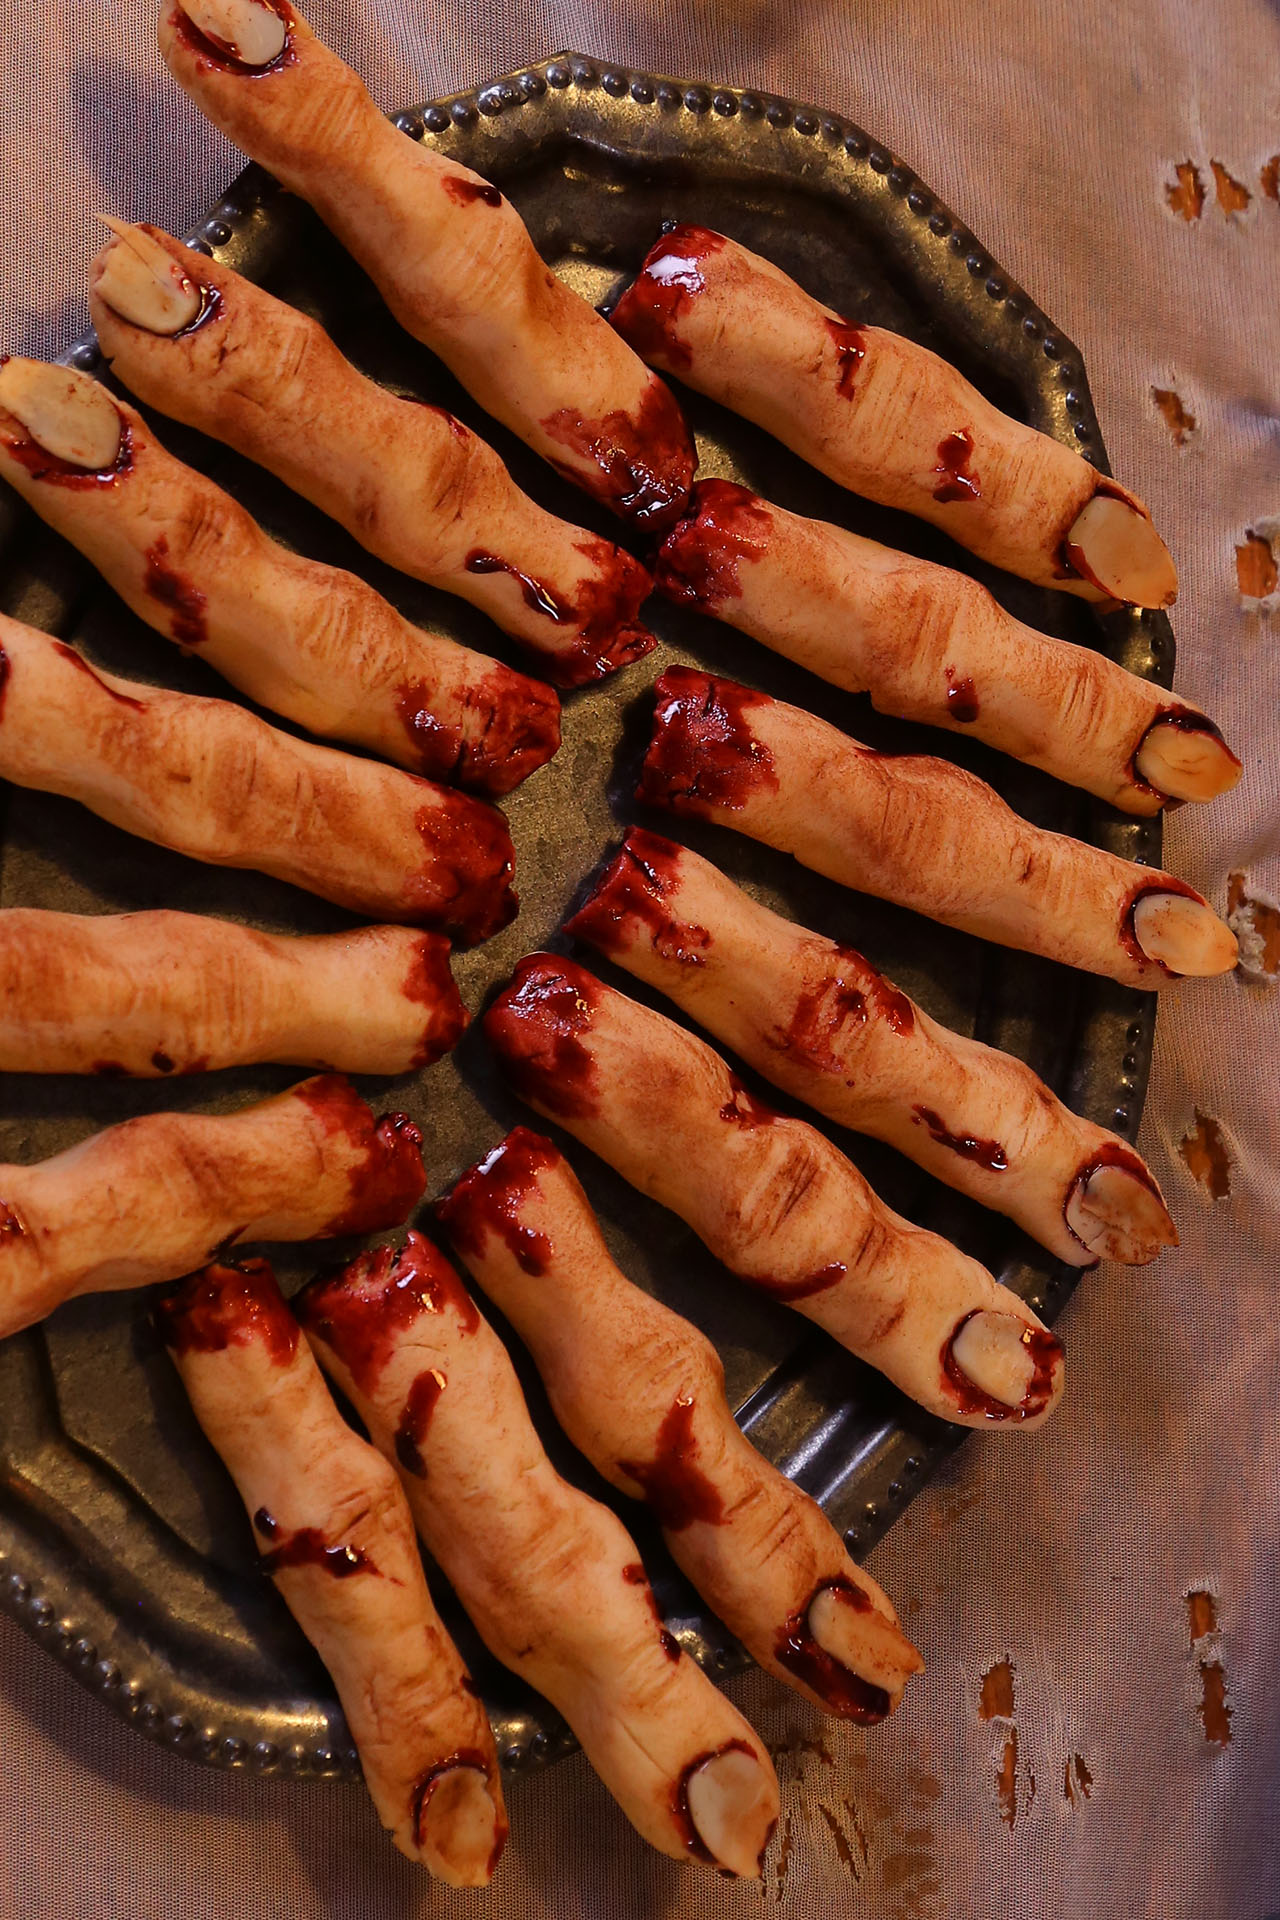 Severed-Fingers-Alt_2x3_1920_The-Domestic-Geek